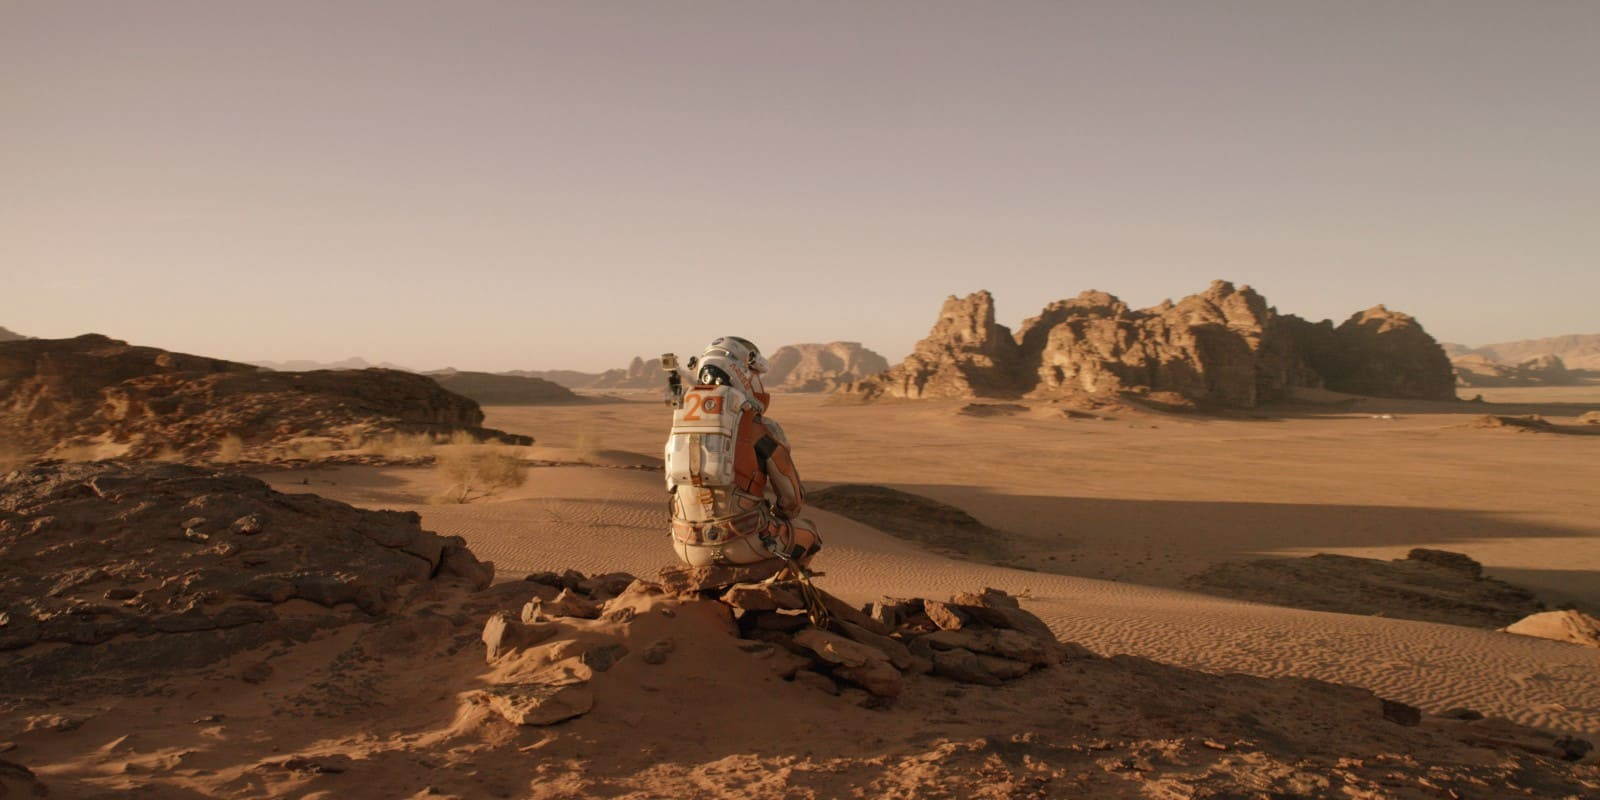 Wide Angle Shot - Camera Movements and Angles- The Martian